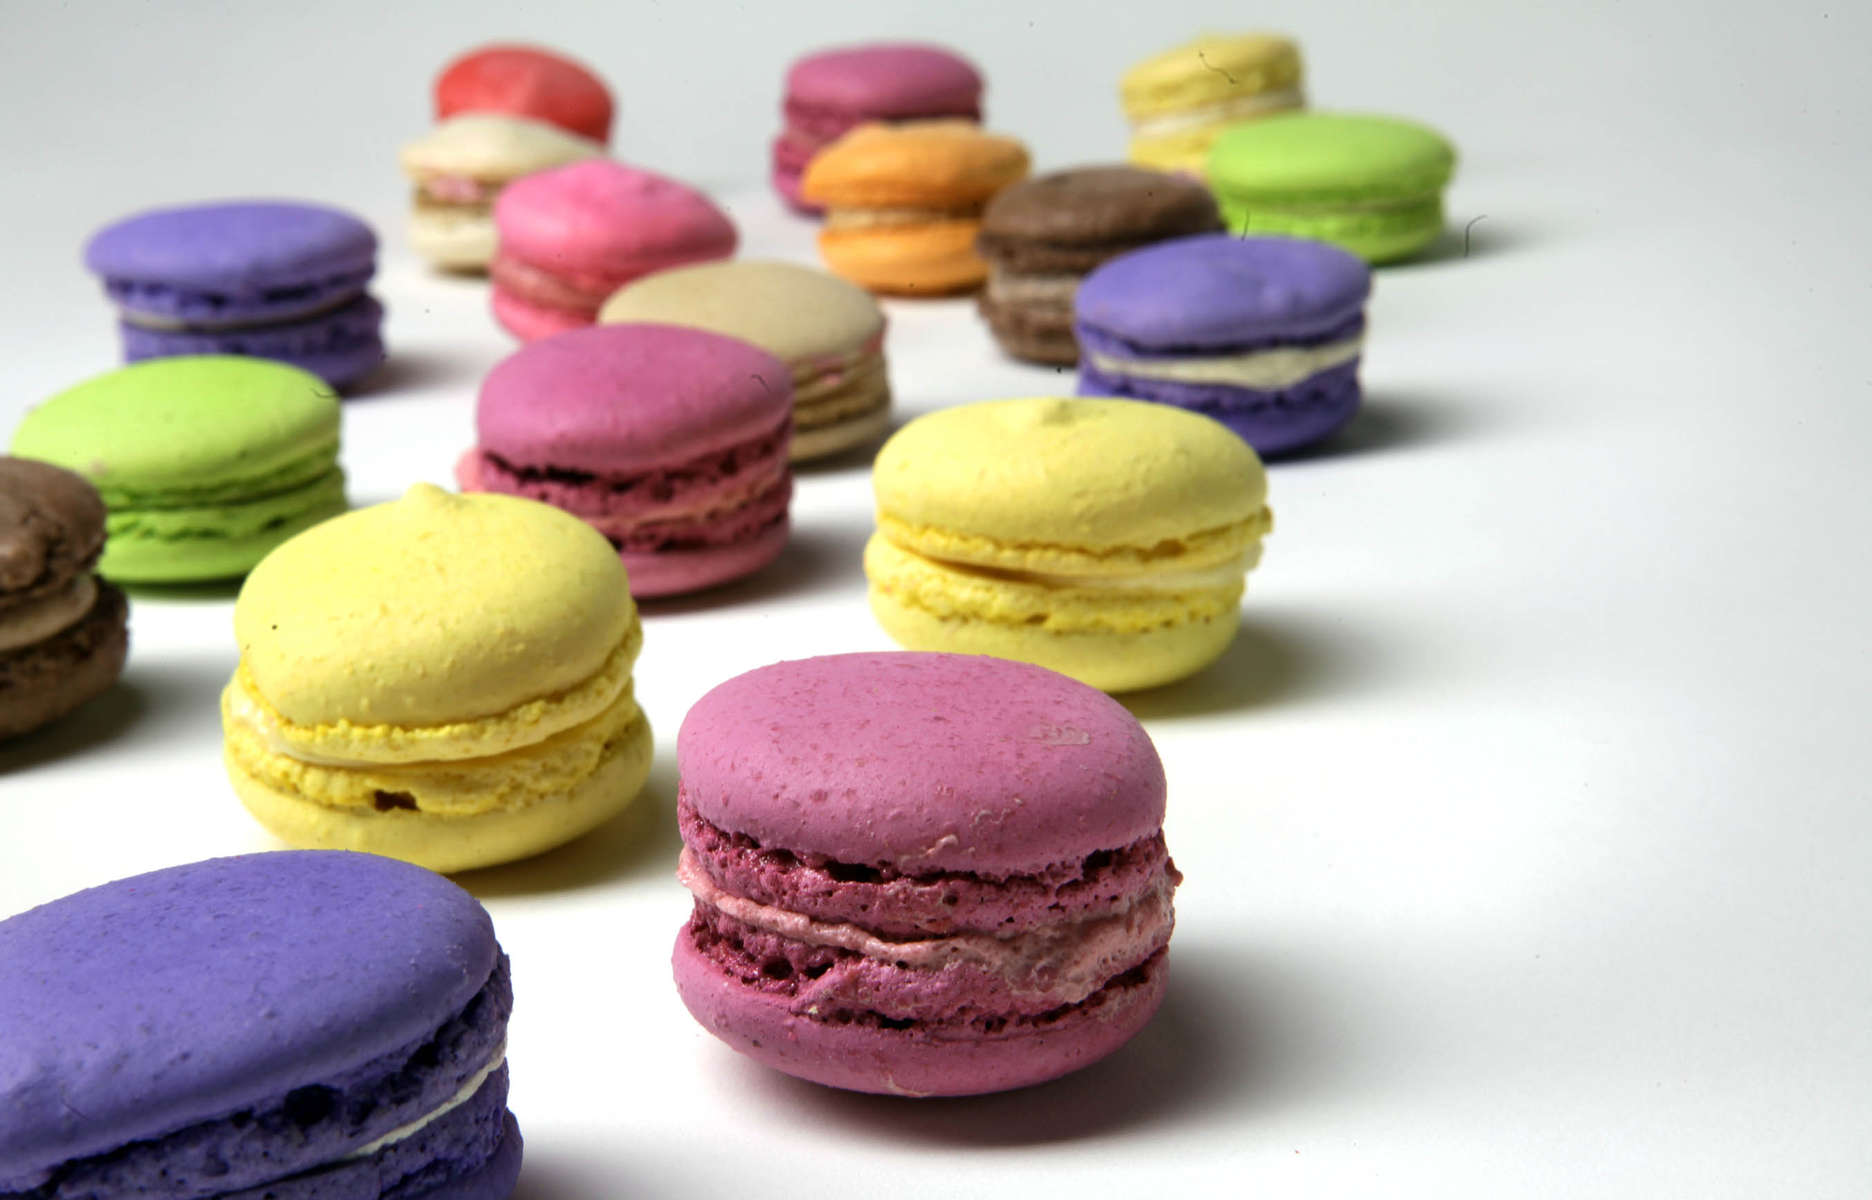 Marianne Fourcaudot takes on the mission of introducing macarons to Milwaukee.